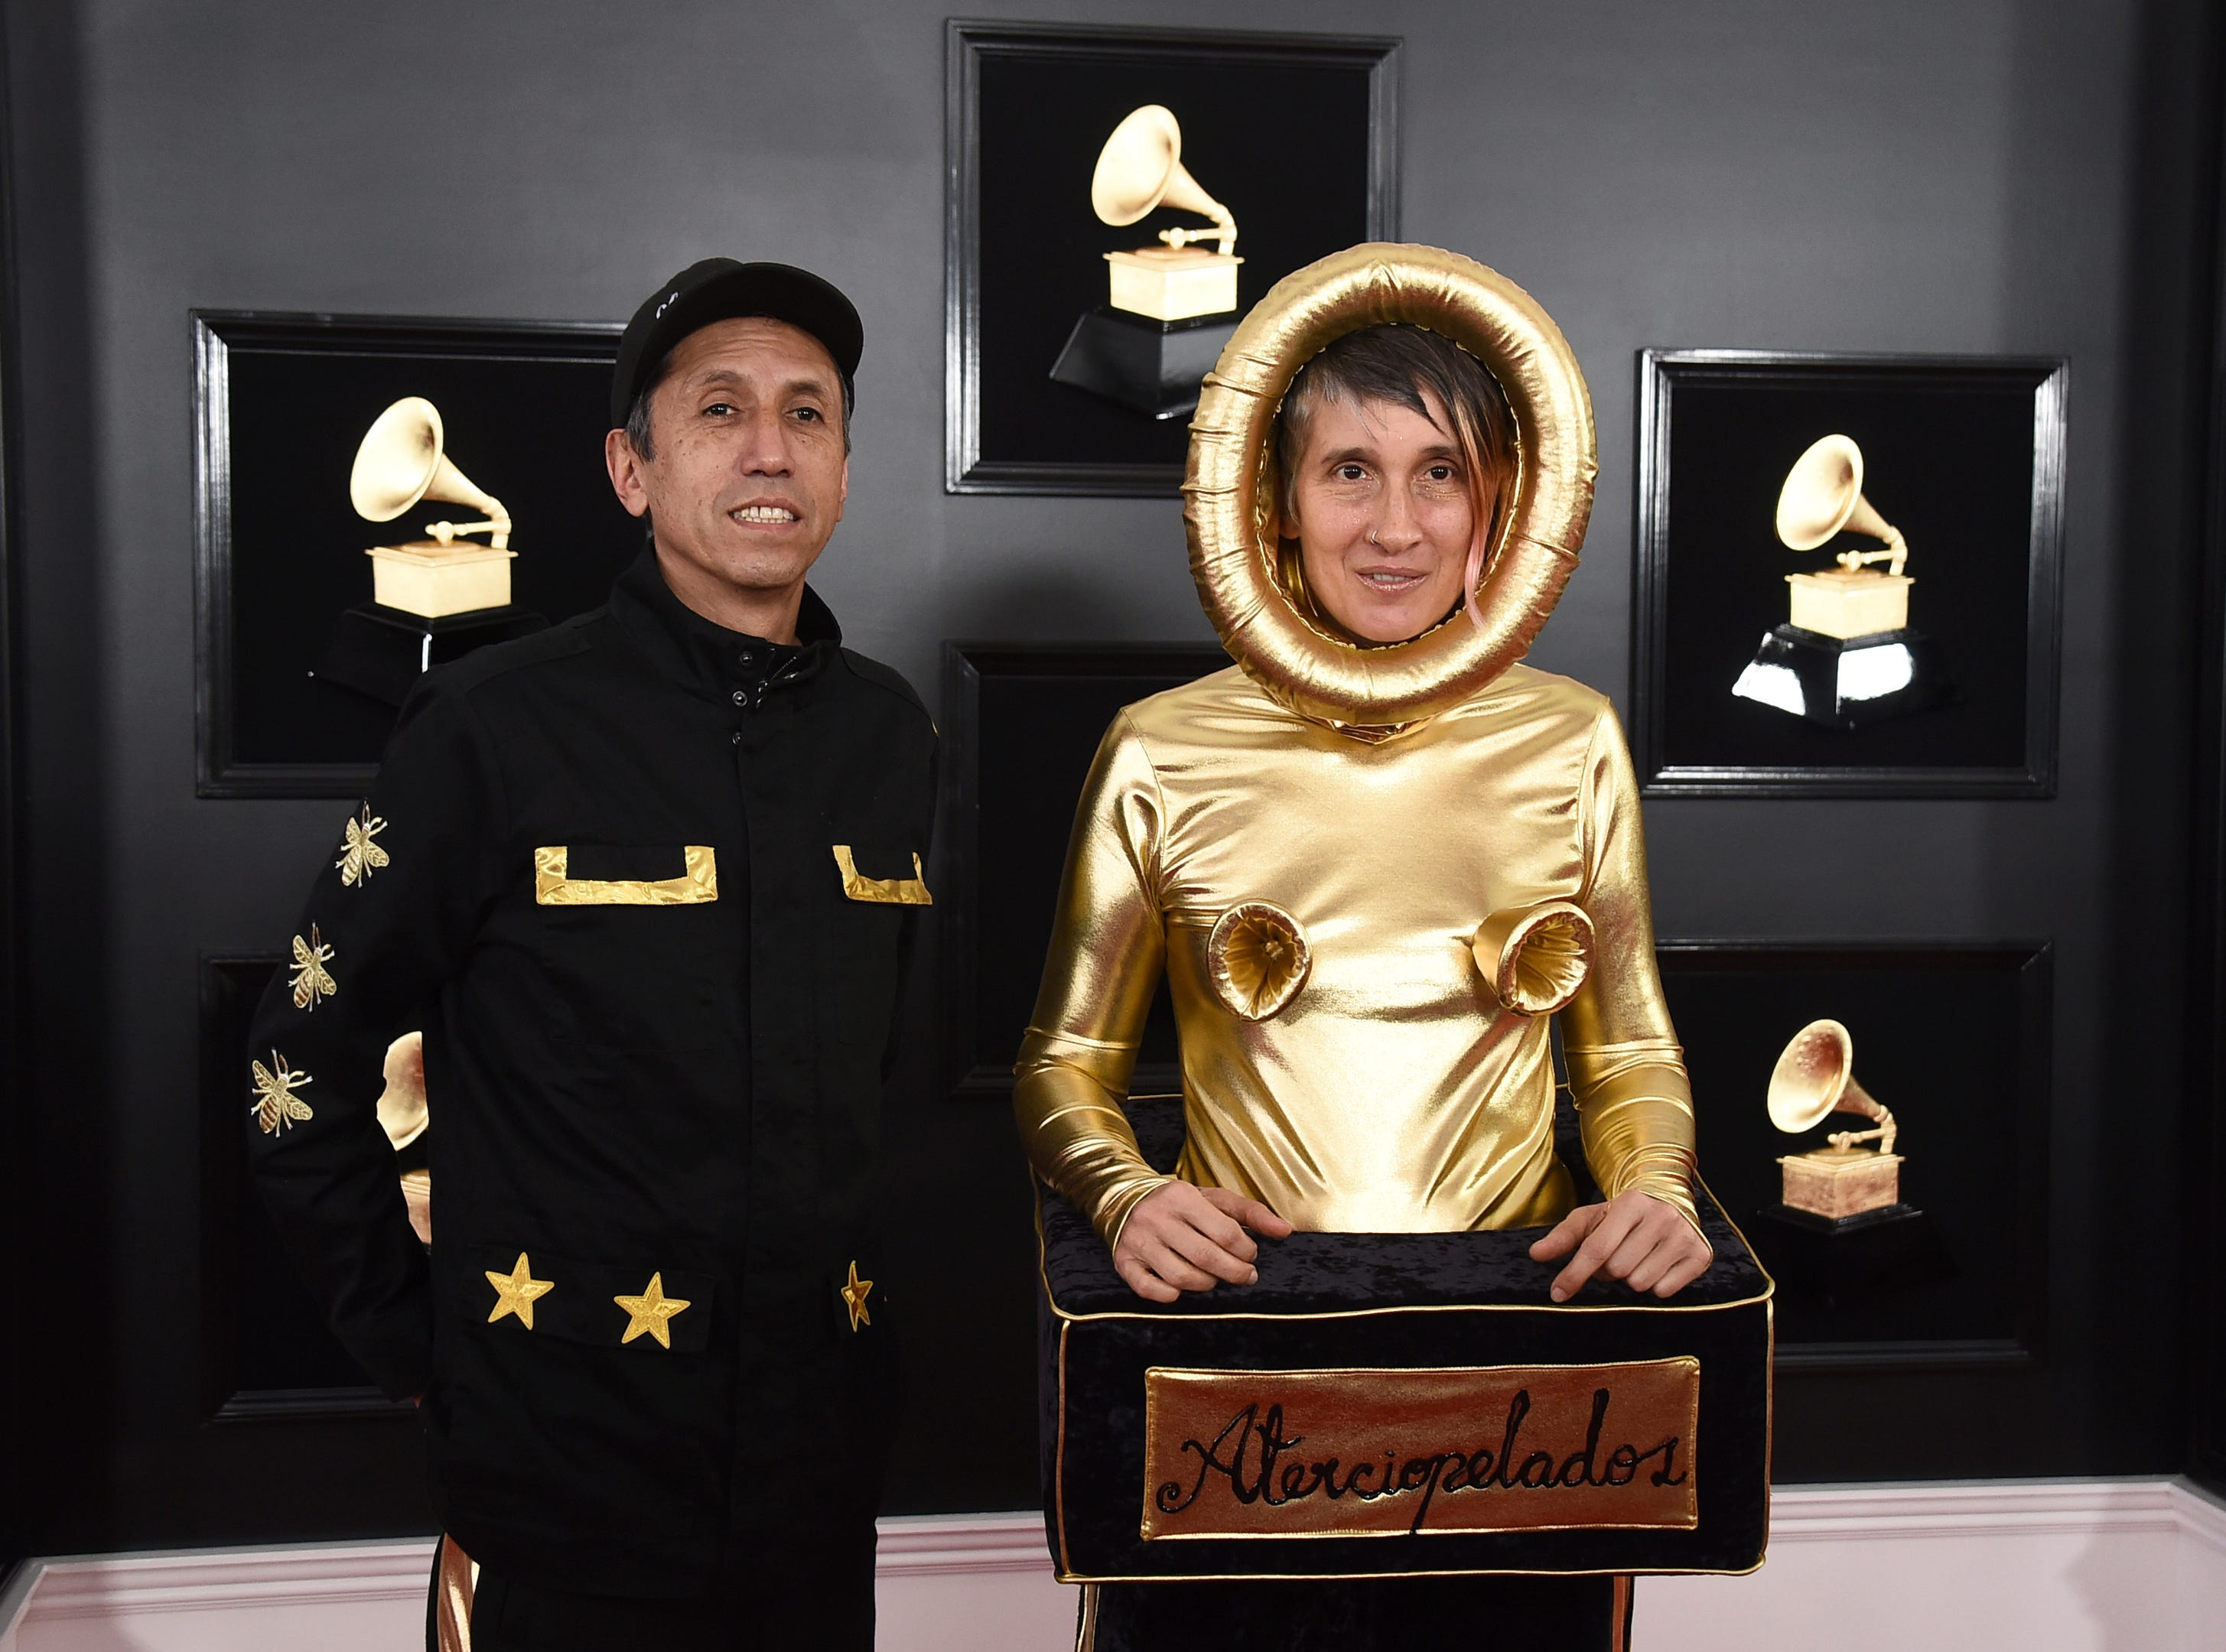 Hector Buitrago, left, and Andrea Echeverri, of Aterciopelados, arrive at the 61st annual Grammy Awards at the Staples Center on Sunday, Feb. 10, 2019, in Los Angeles. .